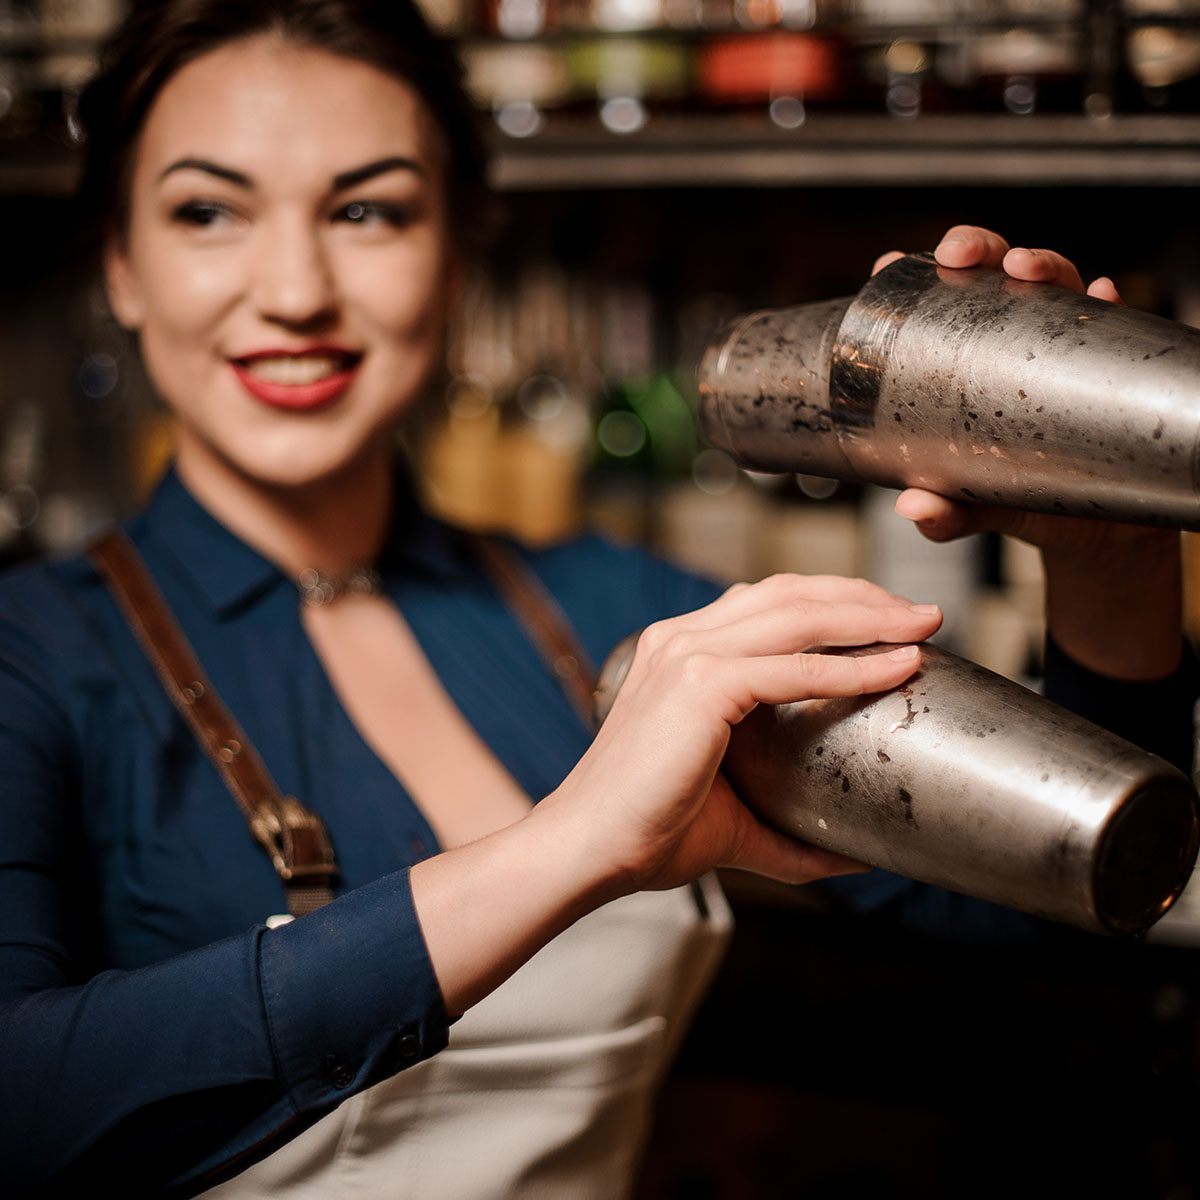 9 Tips for Getting the Best Service at the Bar